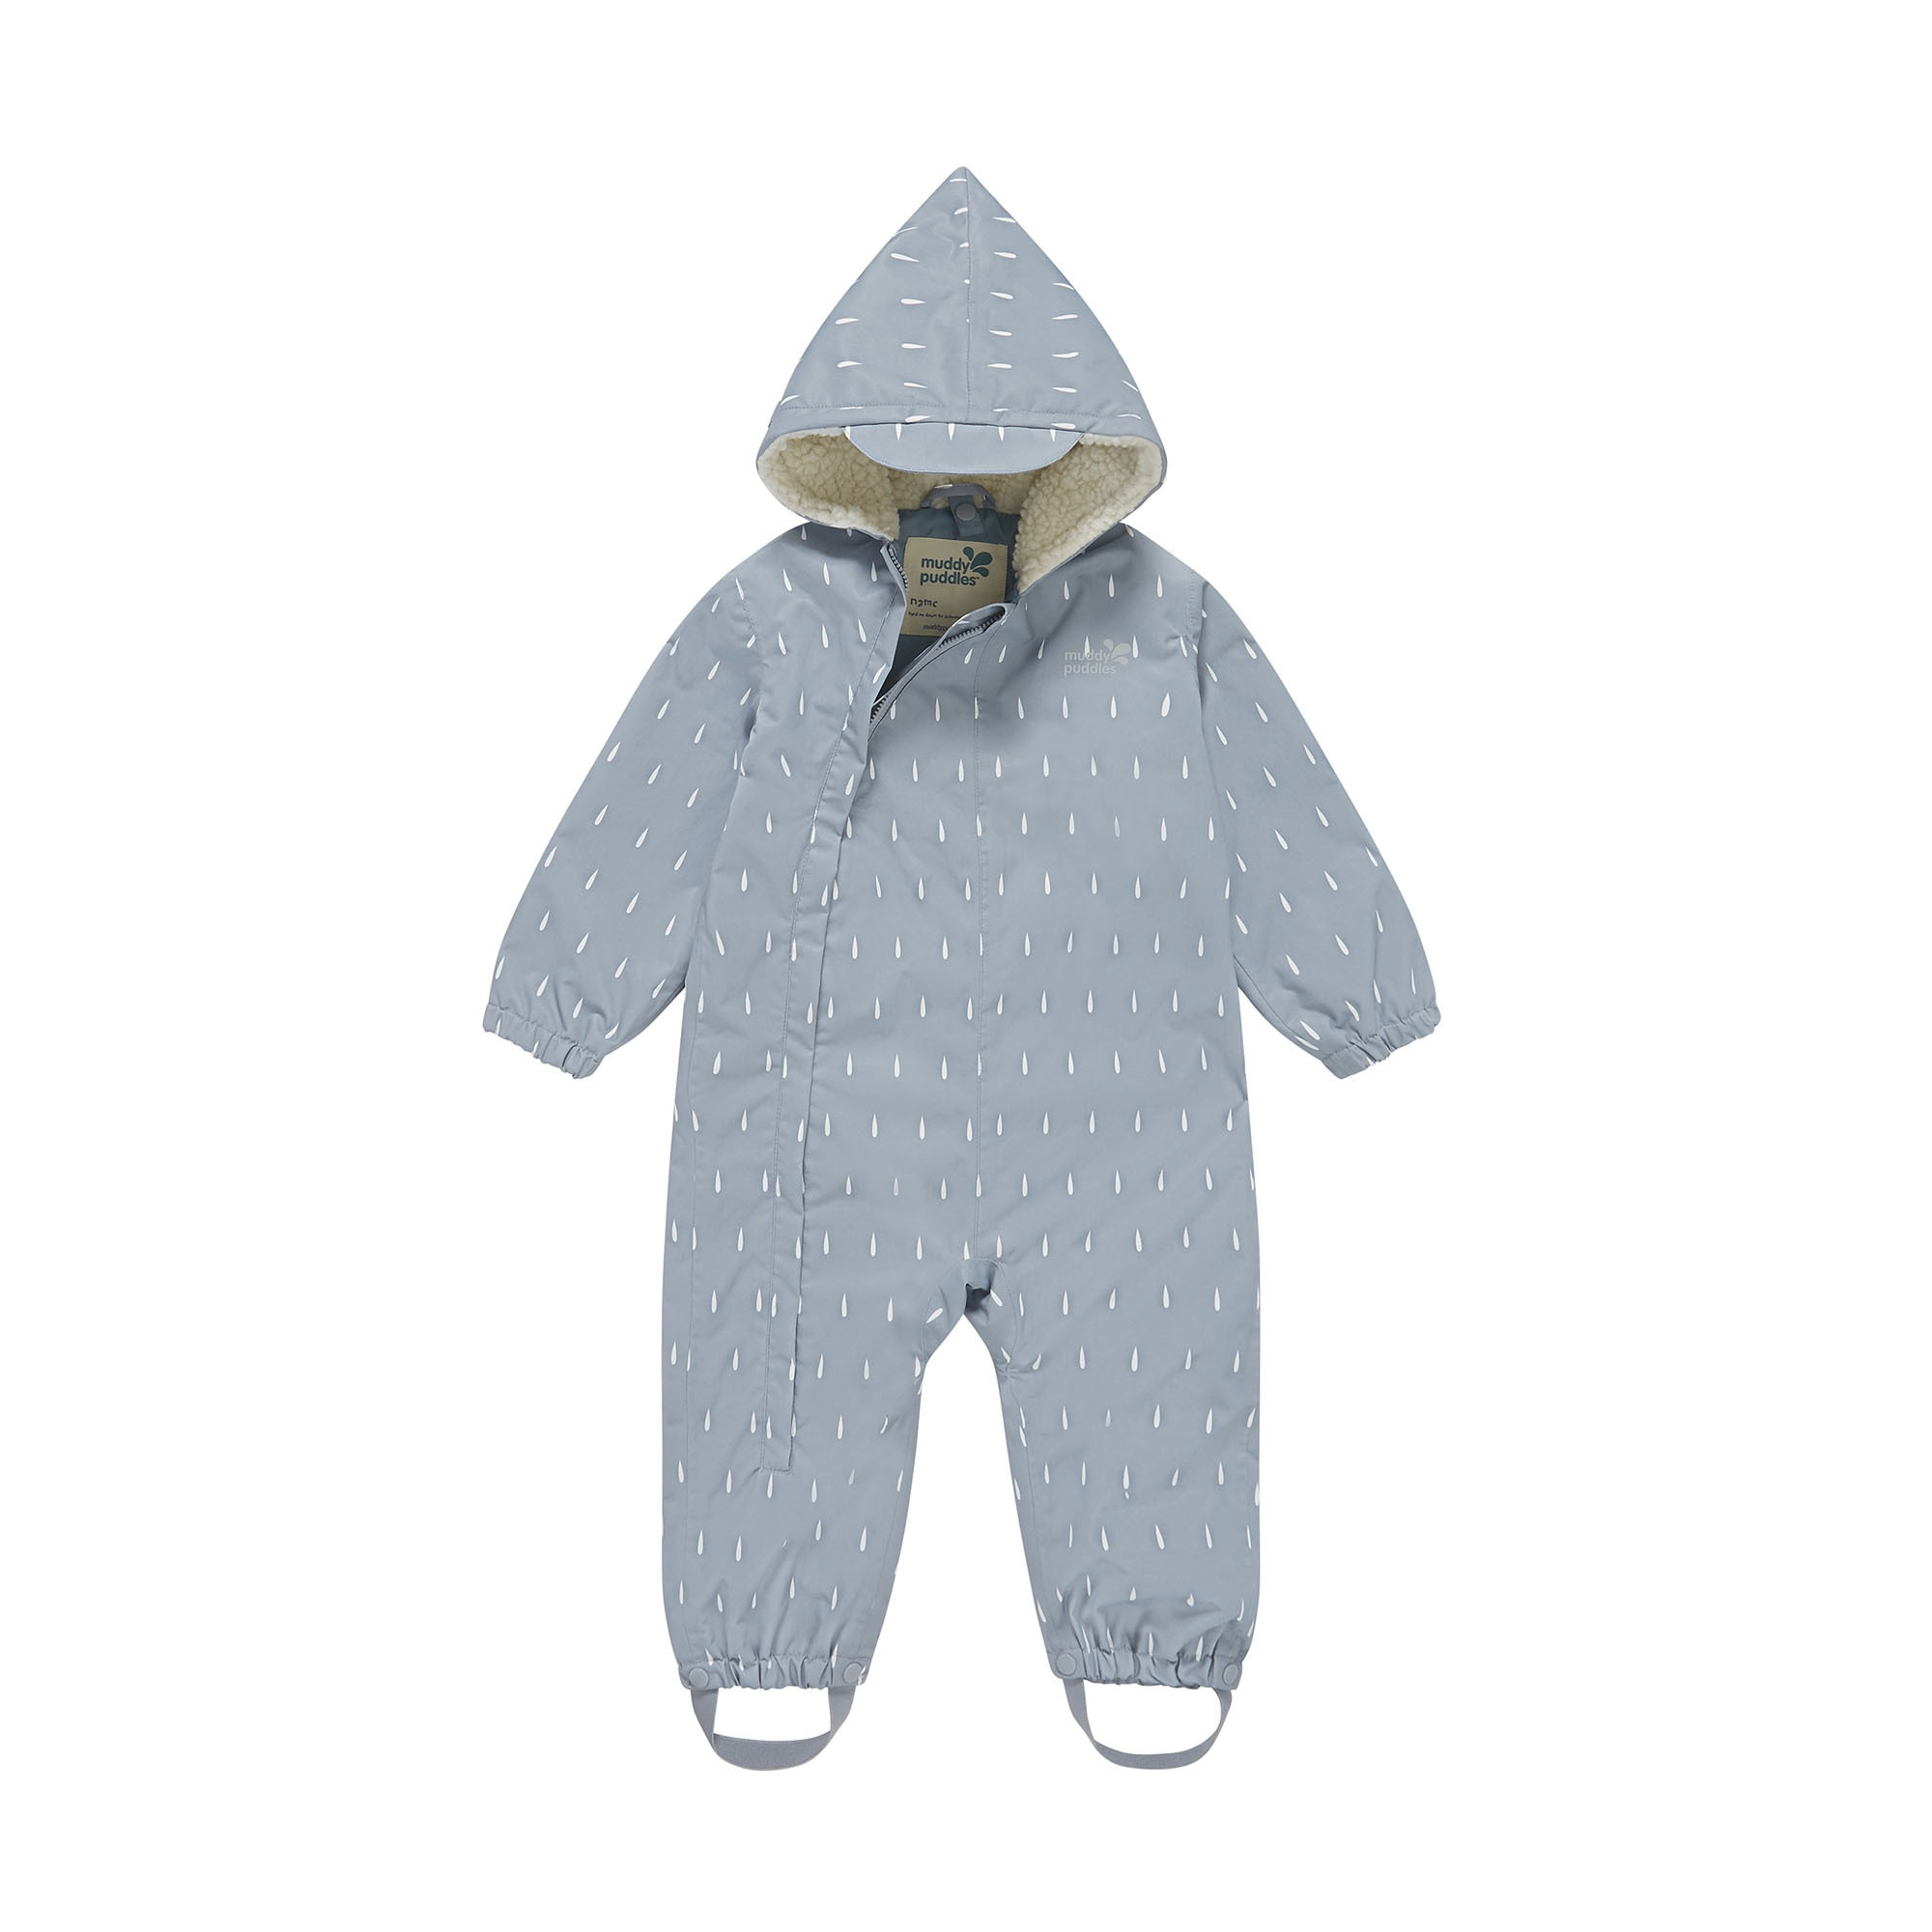 Muddy Puddles Scamp Suit | review